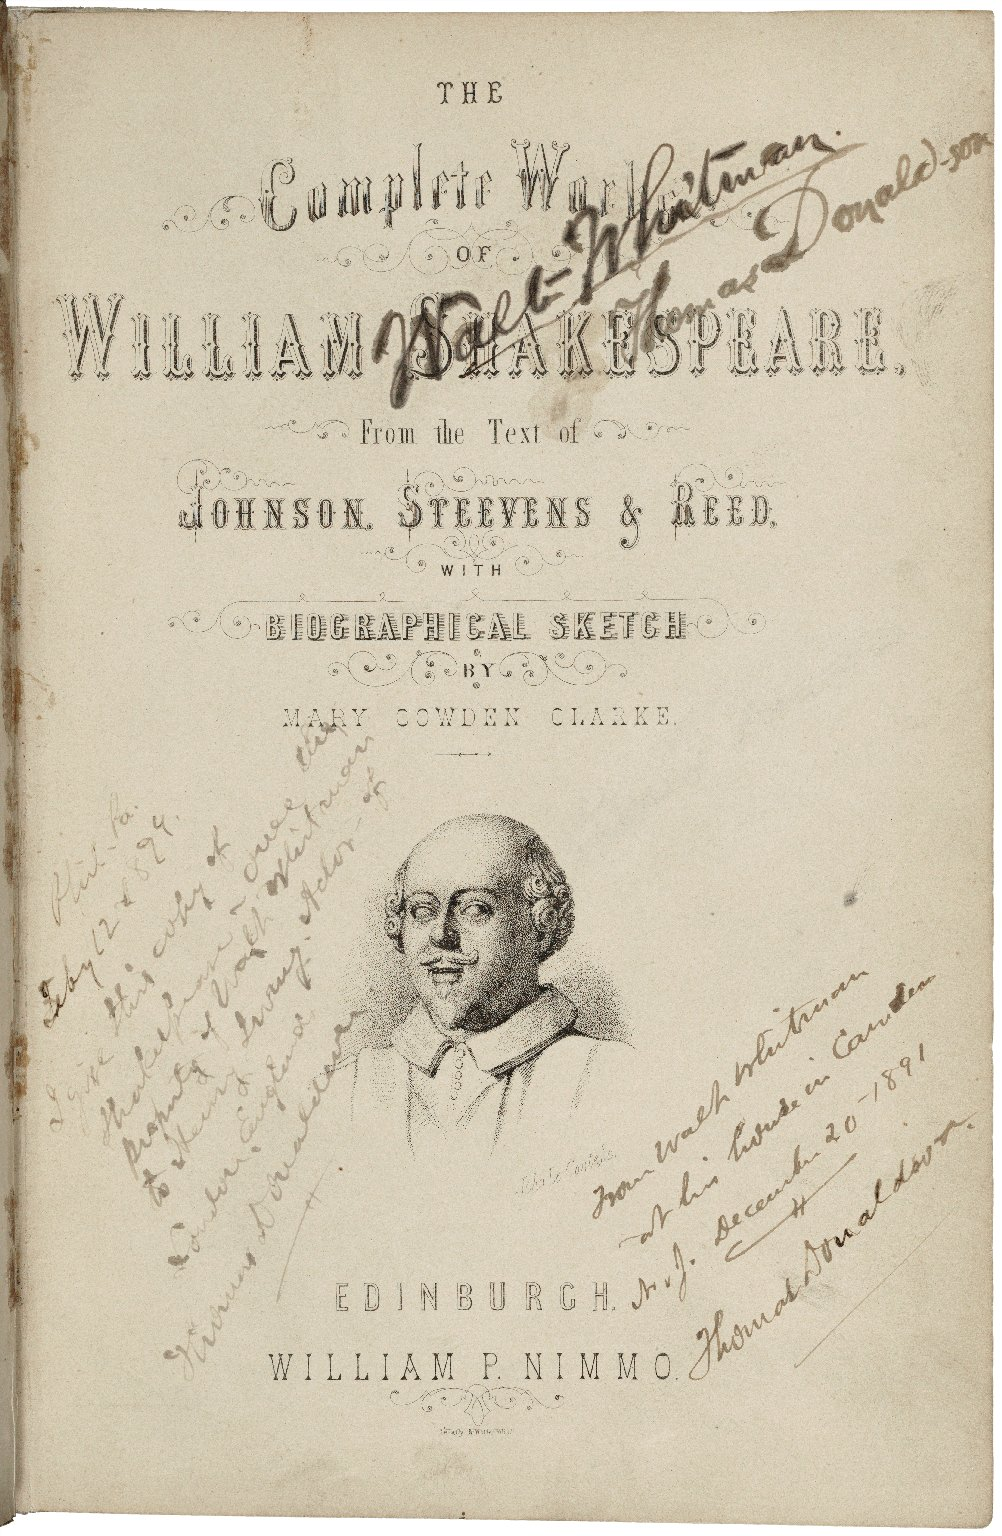 [Works.] The complete works of William Shakespeare, from the text of Johnson, Steevens & Reed ...